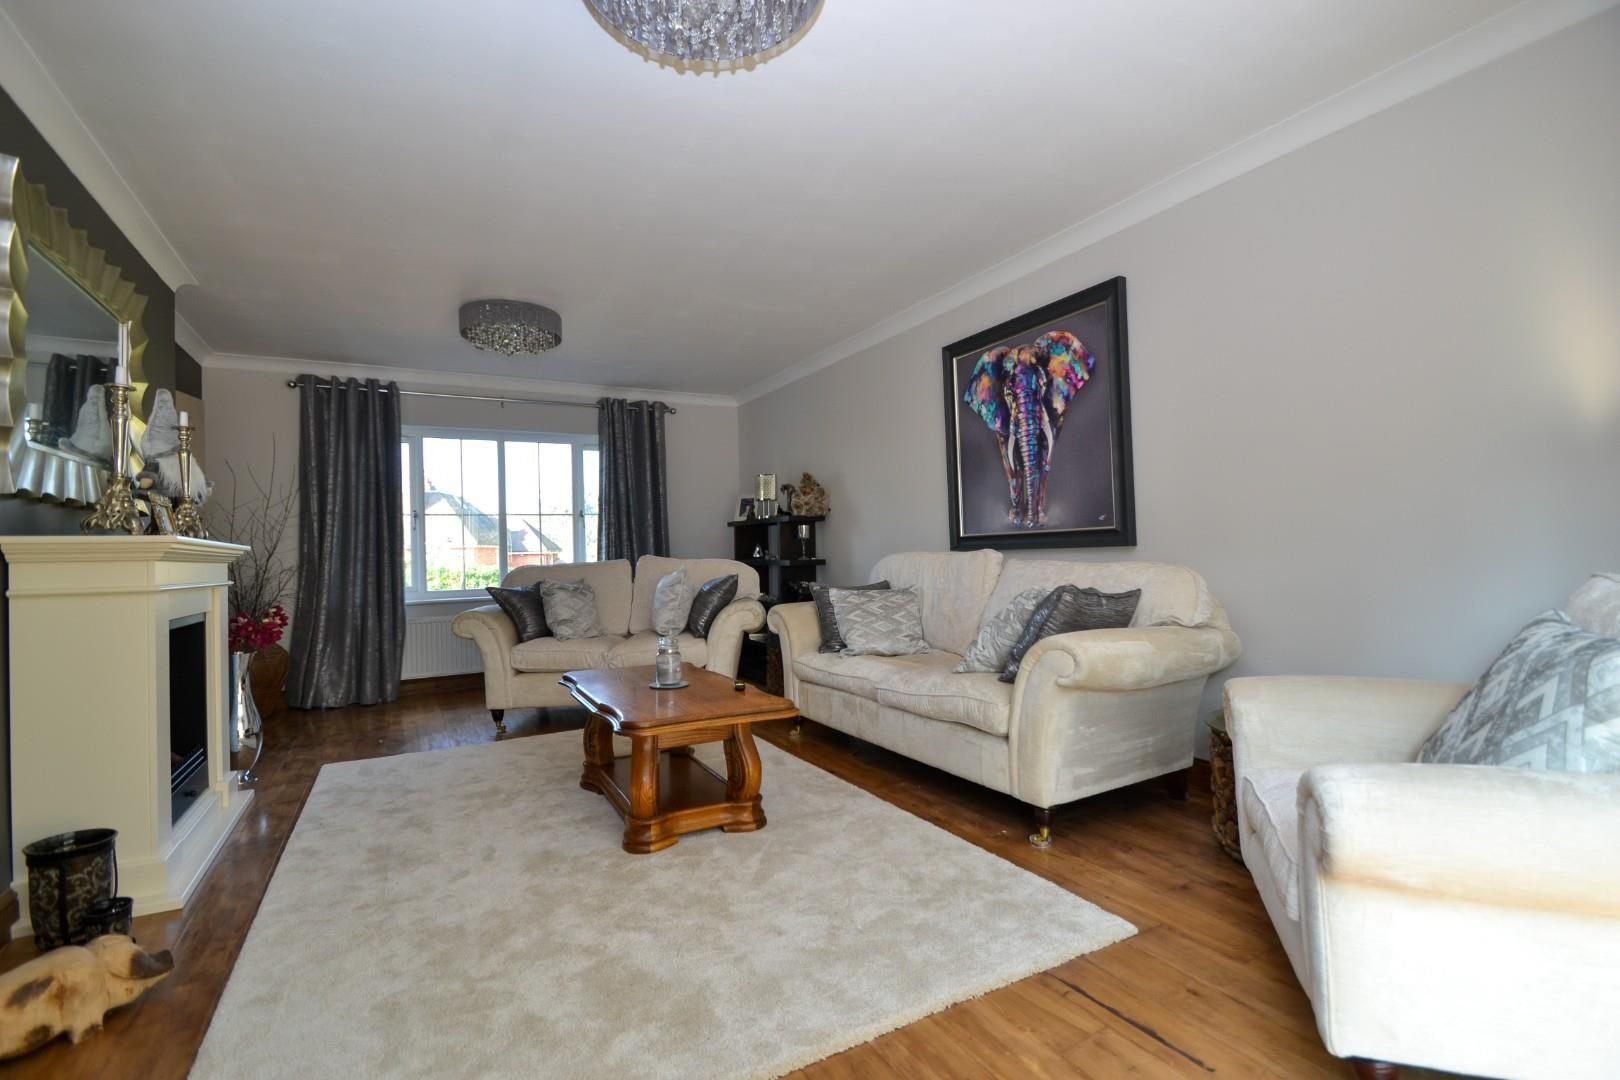 5 bed house for sale 6